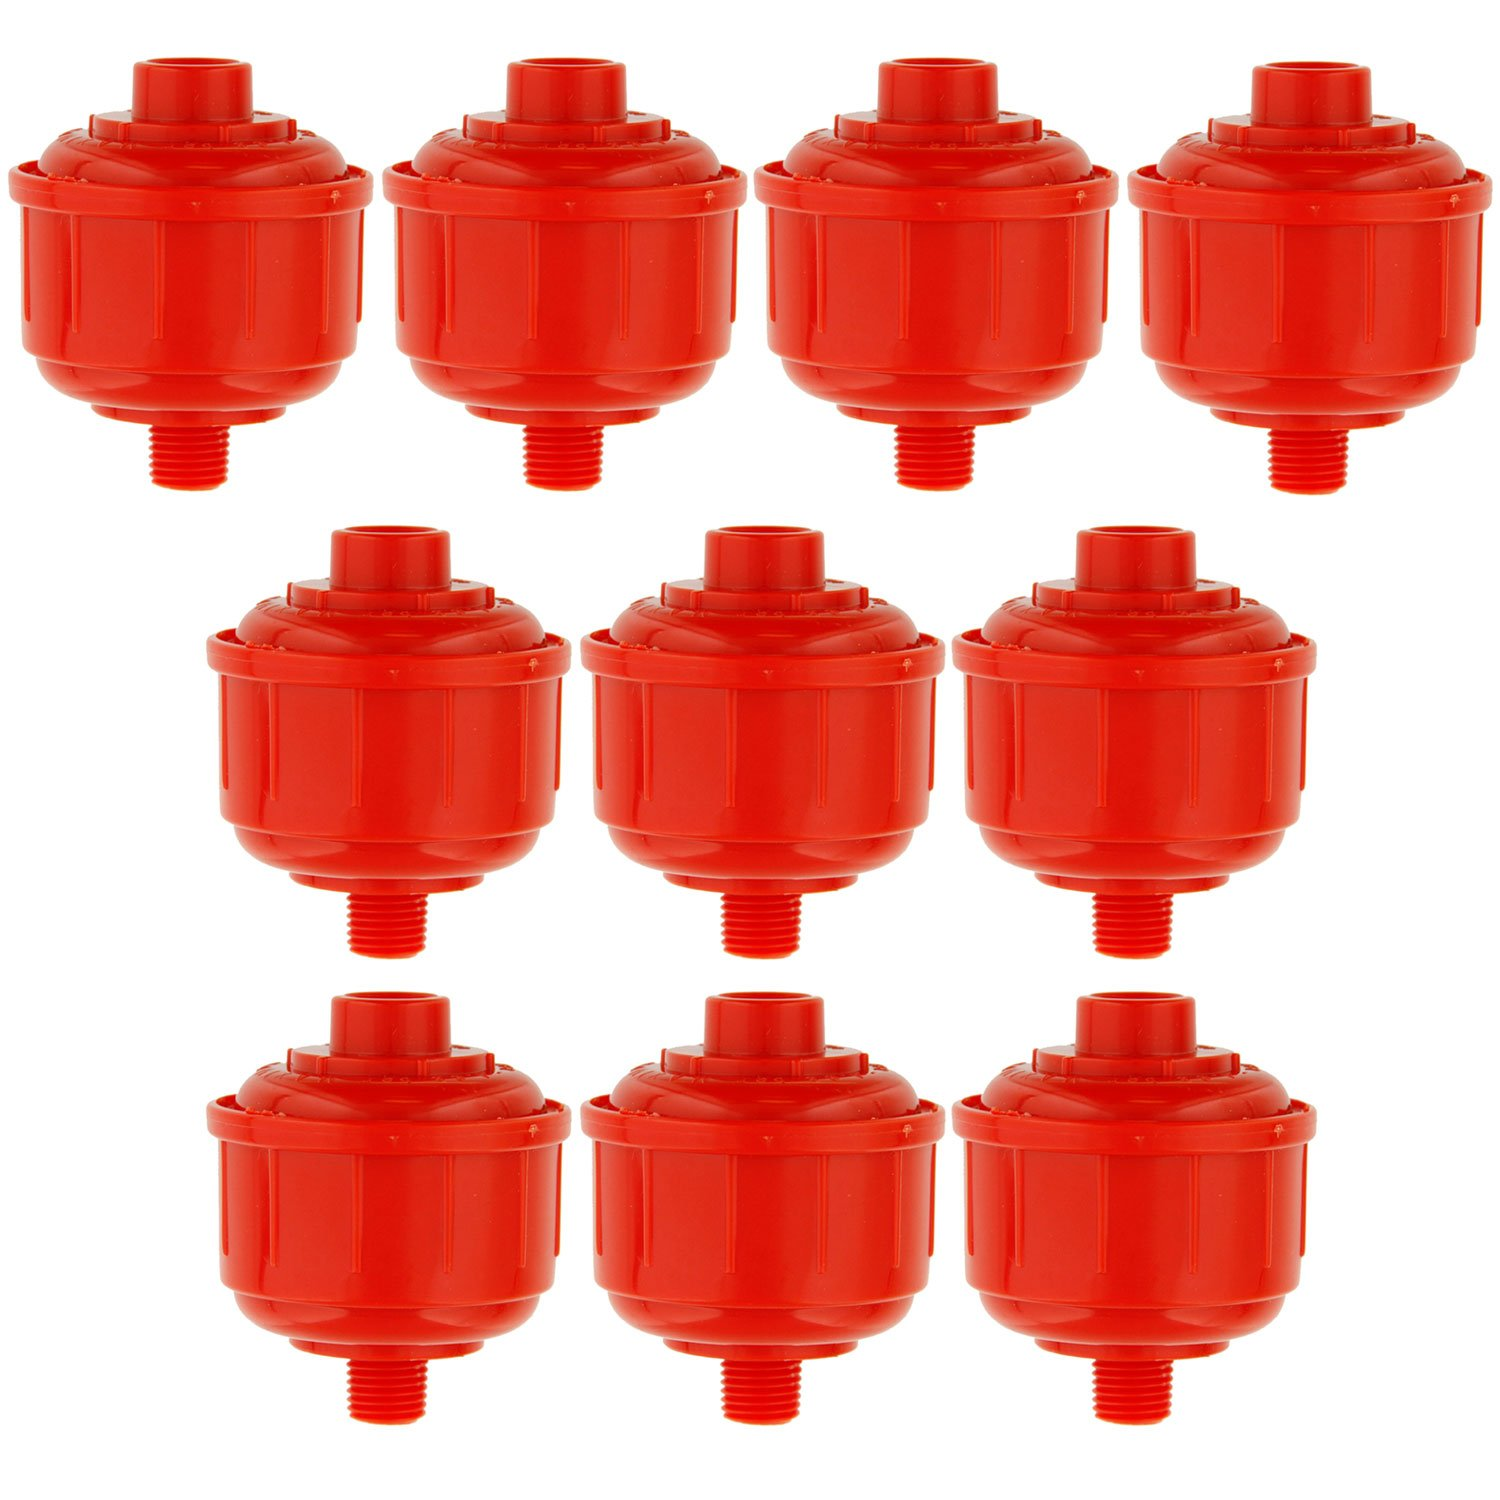 TCP Global 10 Disposable Mini Air/Water Filters Only Standard 1/4'' Threads, Fits most Spray Guns and Air Tools by TCP Global